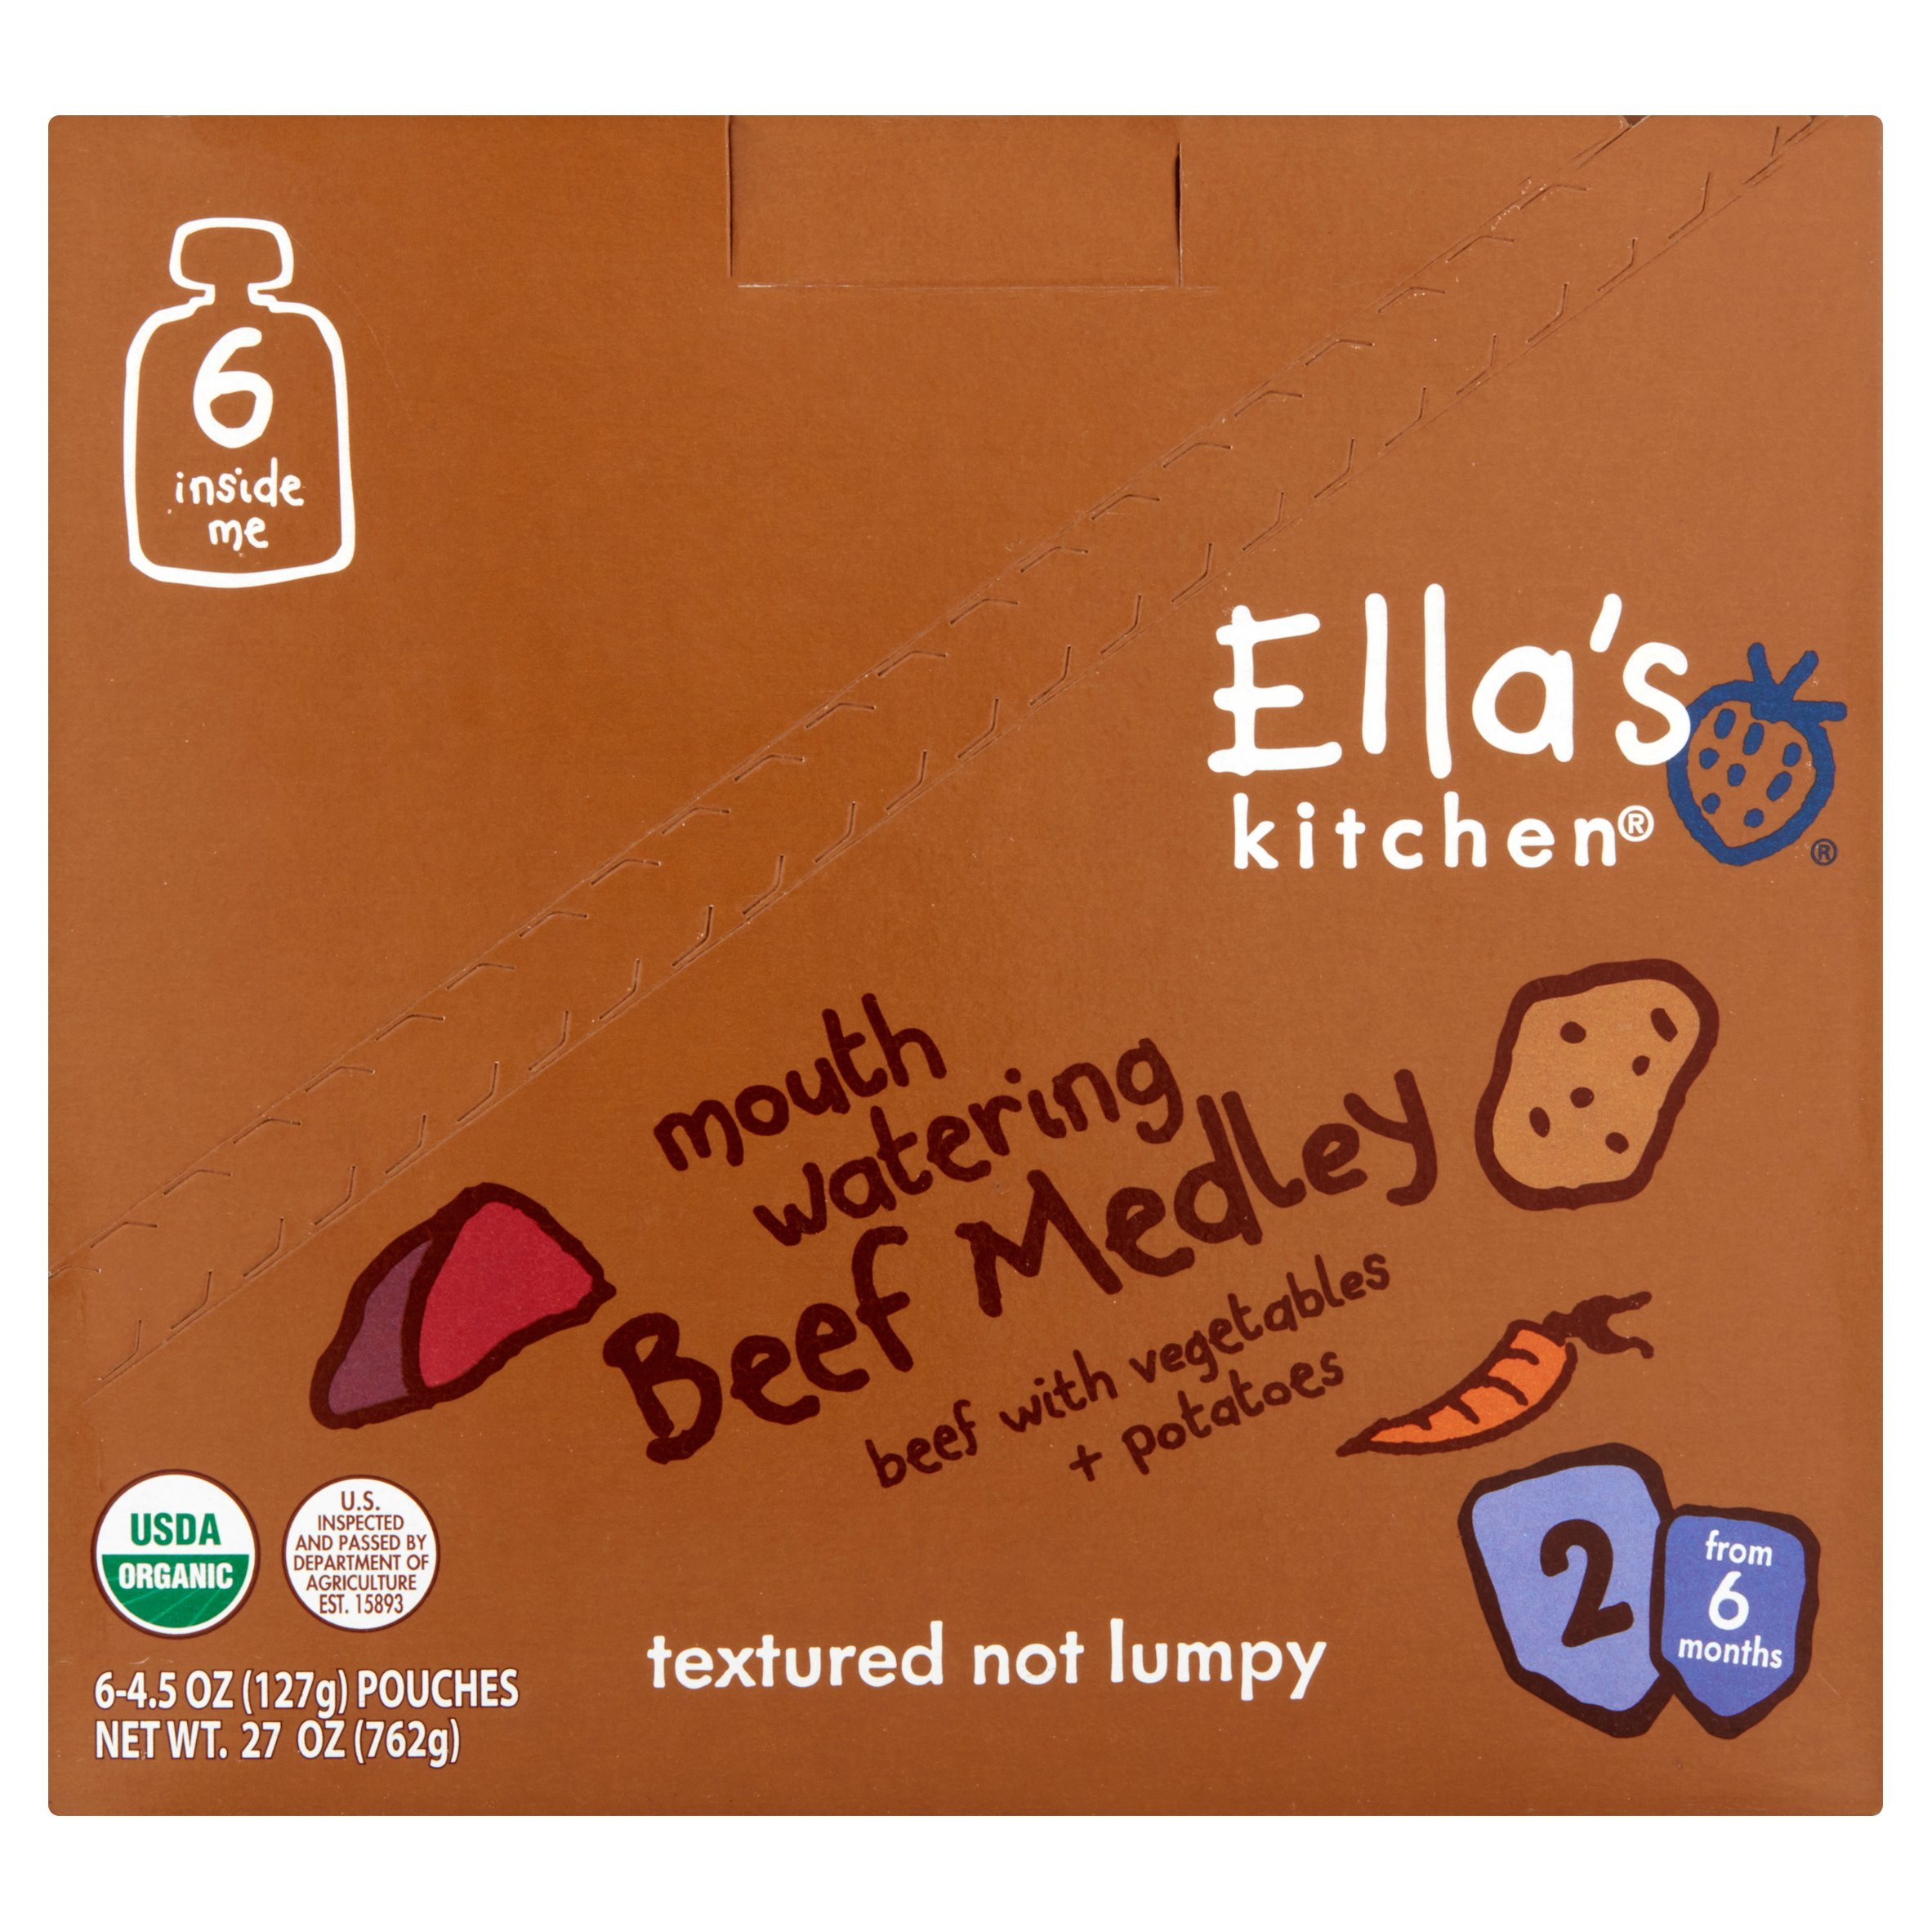 Ella's Kitchen 6+ Months Organic Baby Food, Beef Medley with Vegetables + Potatoes, 4.5 oz. (Pack of 6)